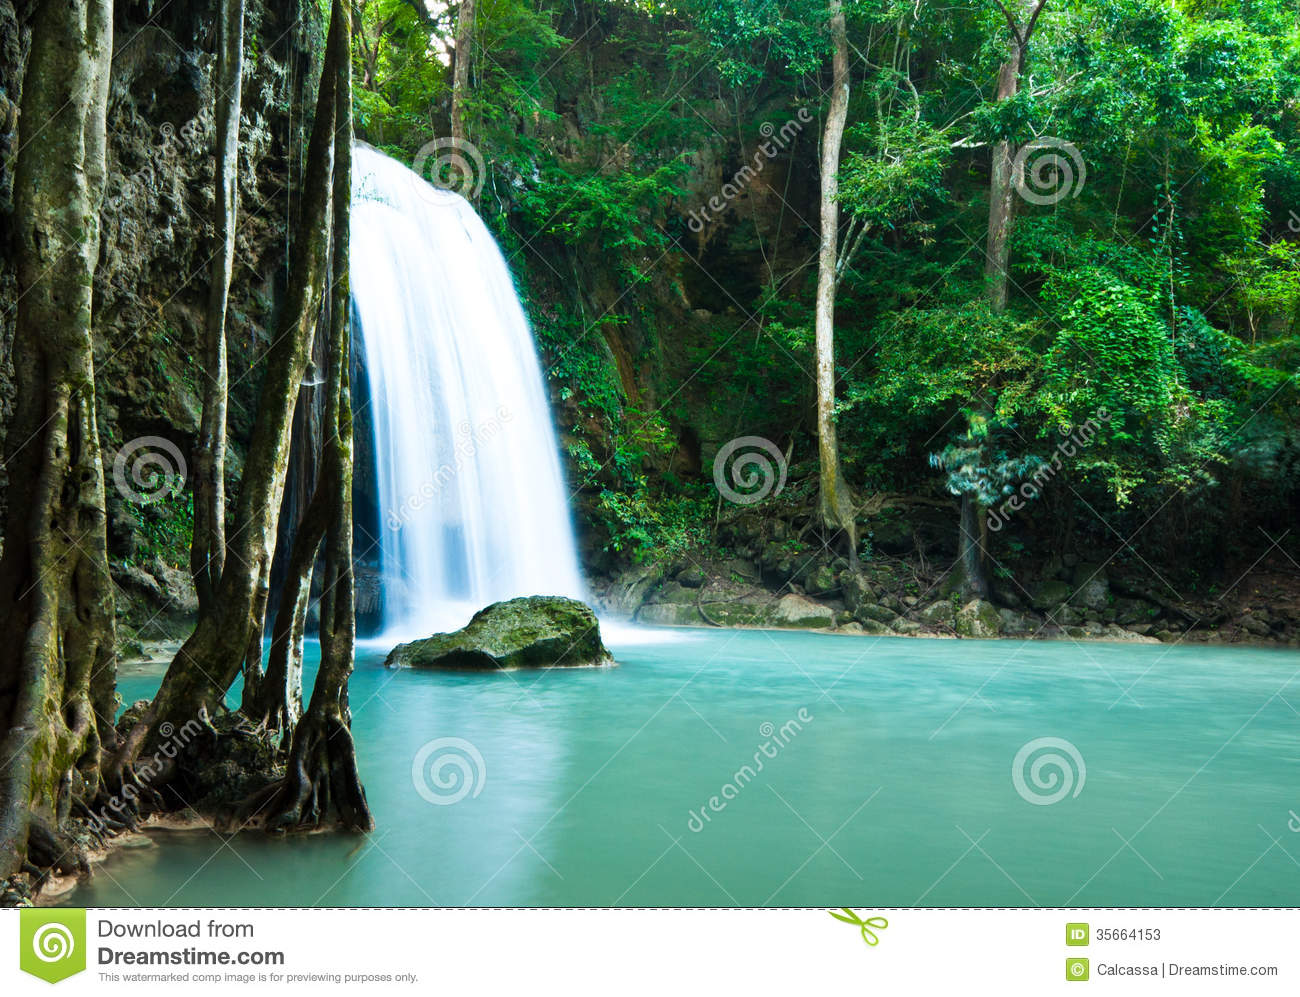 Erawan Waterfall clipart #18, Download drawings